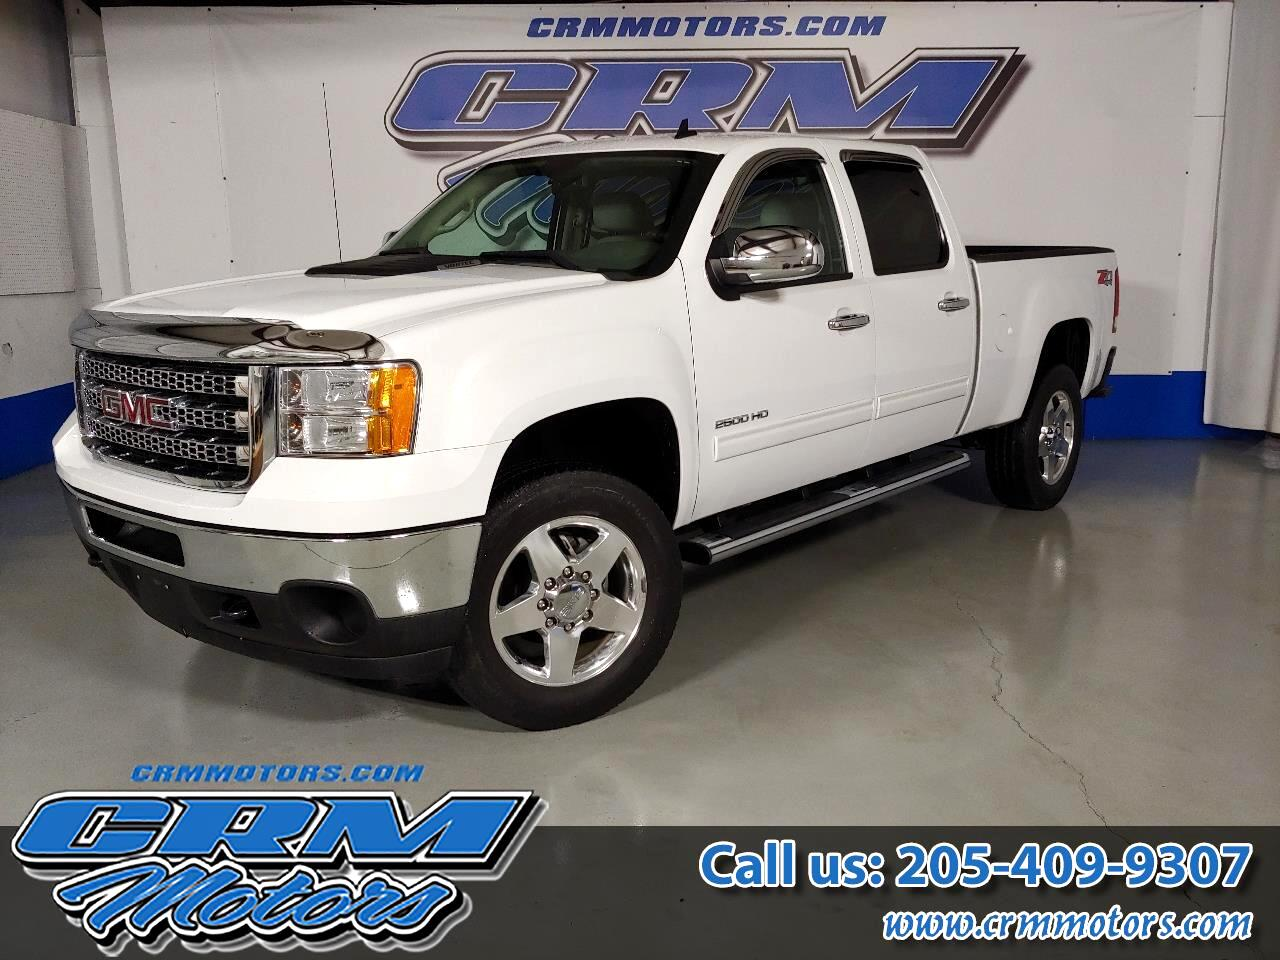 2013 GMC Sierra 2500HD 4WD CREW CAB, LEATHER, AWESOME TRUCK!